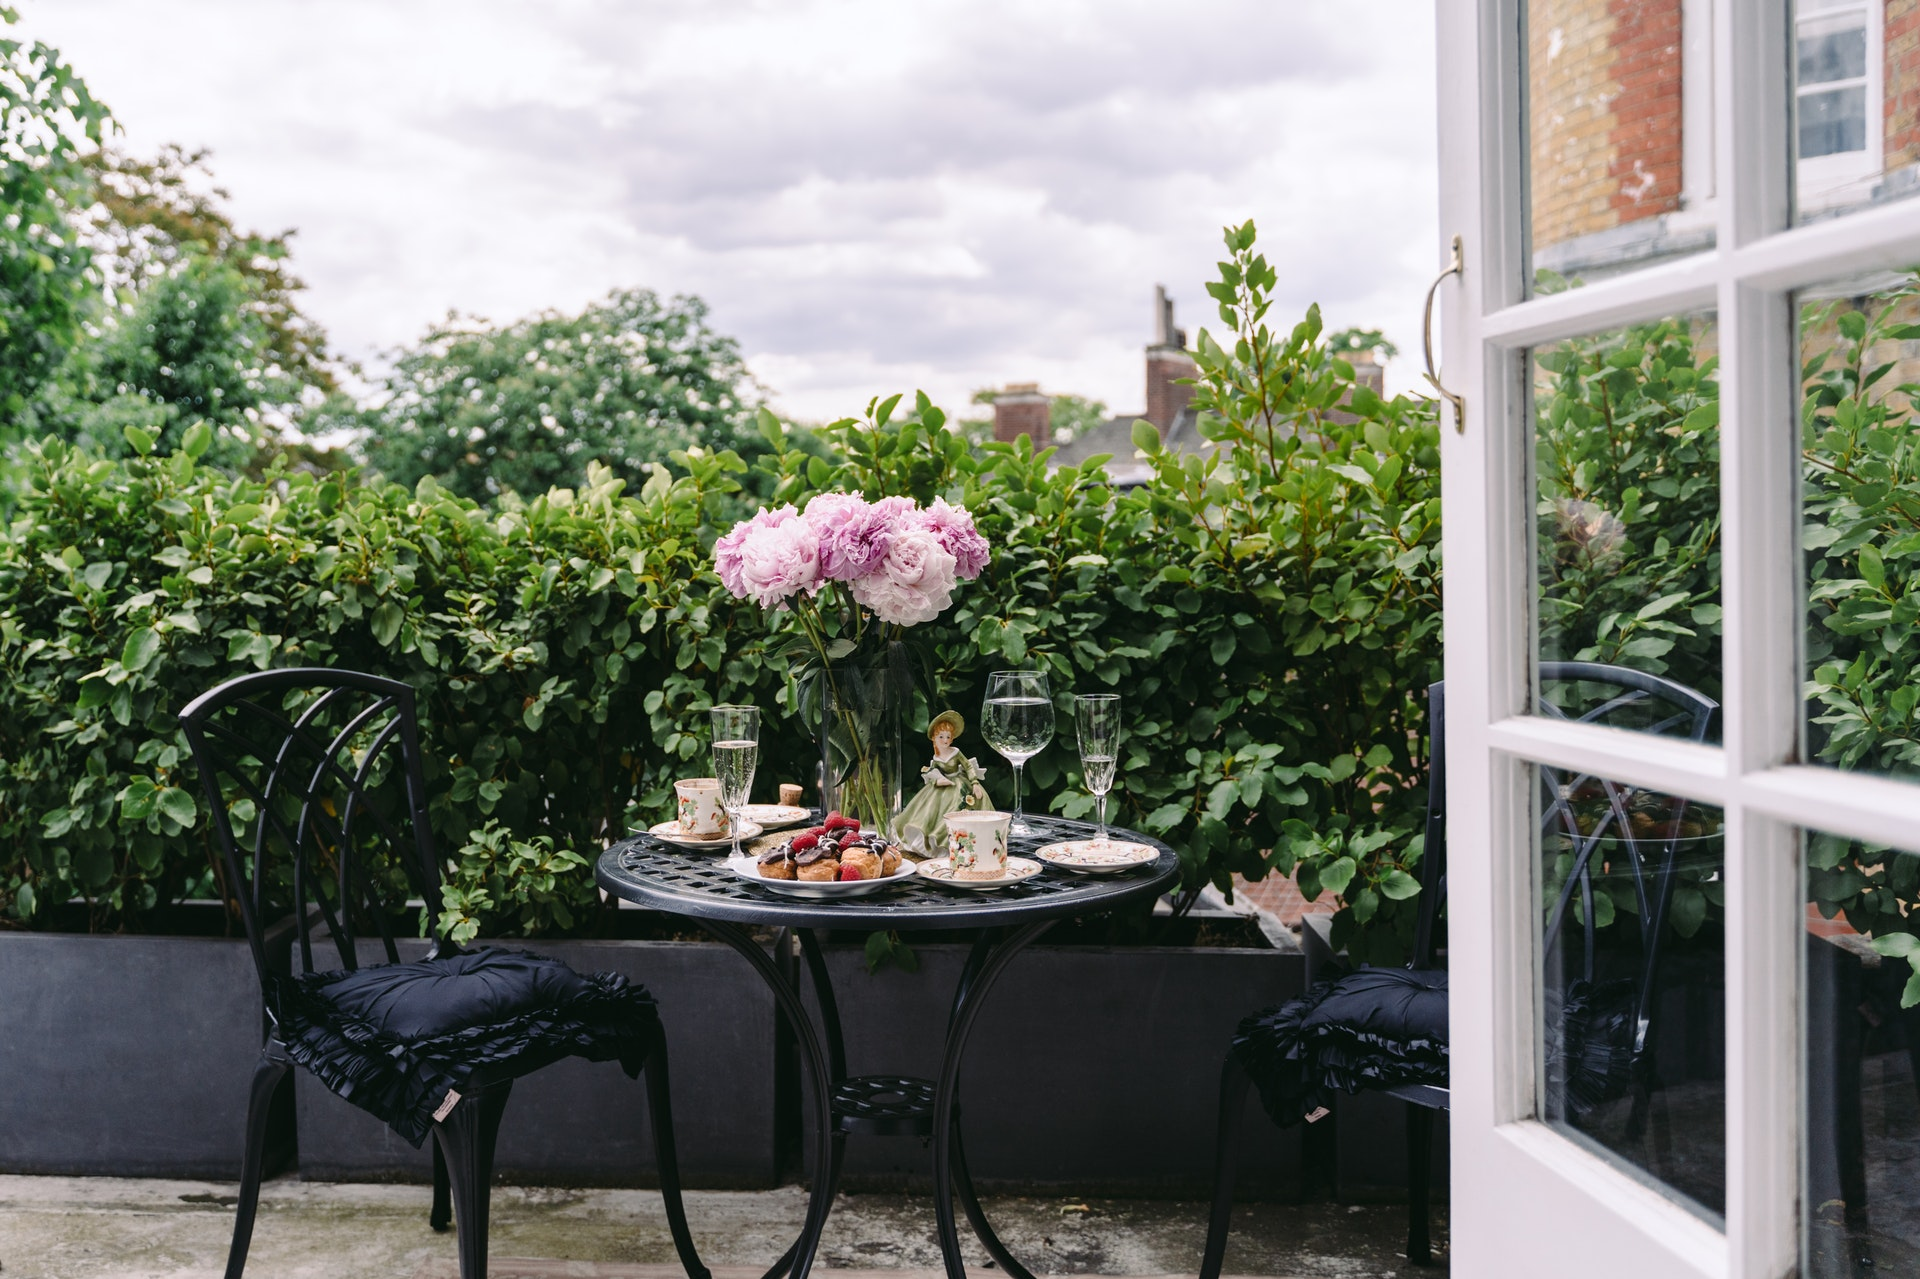 french flowers pink peonies on a table on a balcony